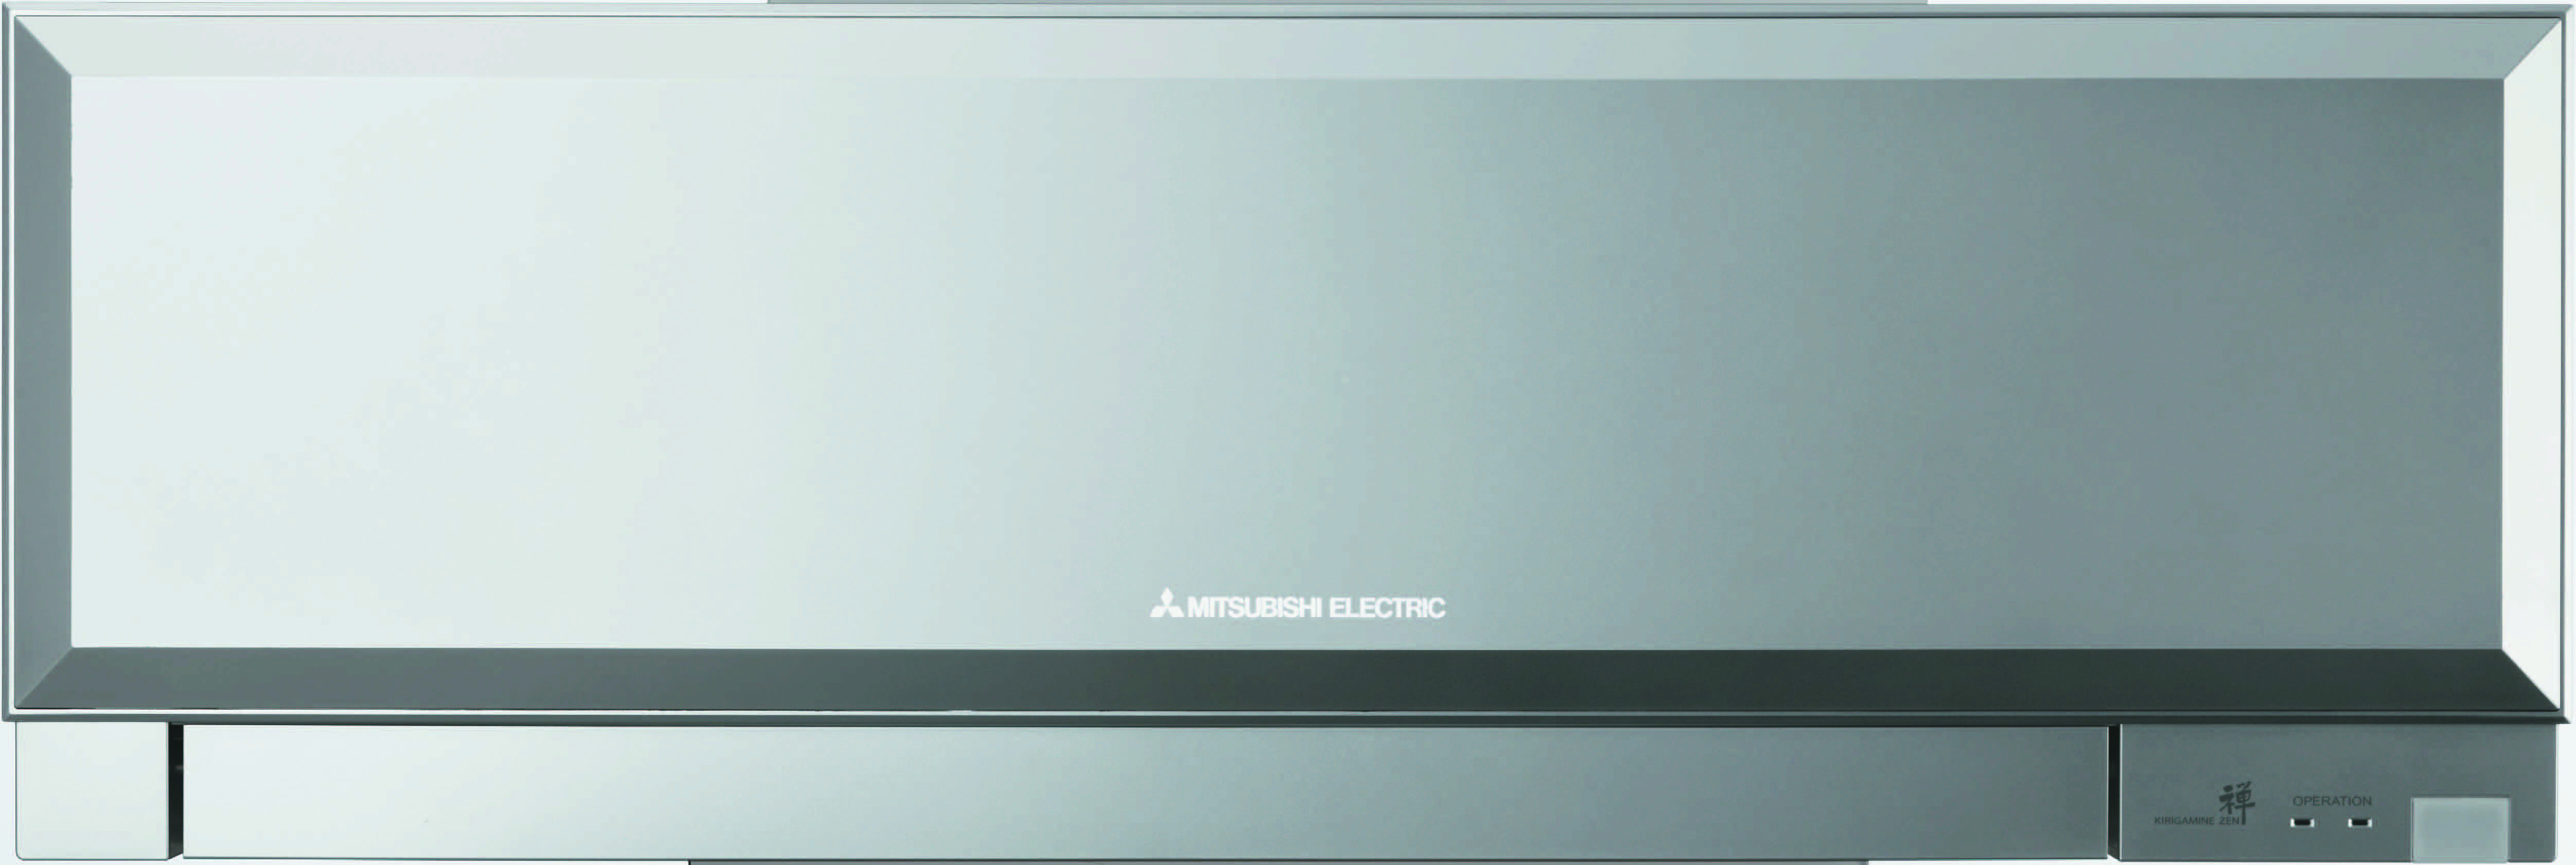 Mitsubishi Electric Split System EF Series Silver